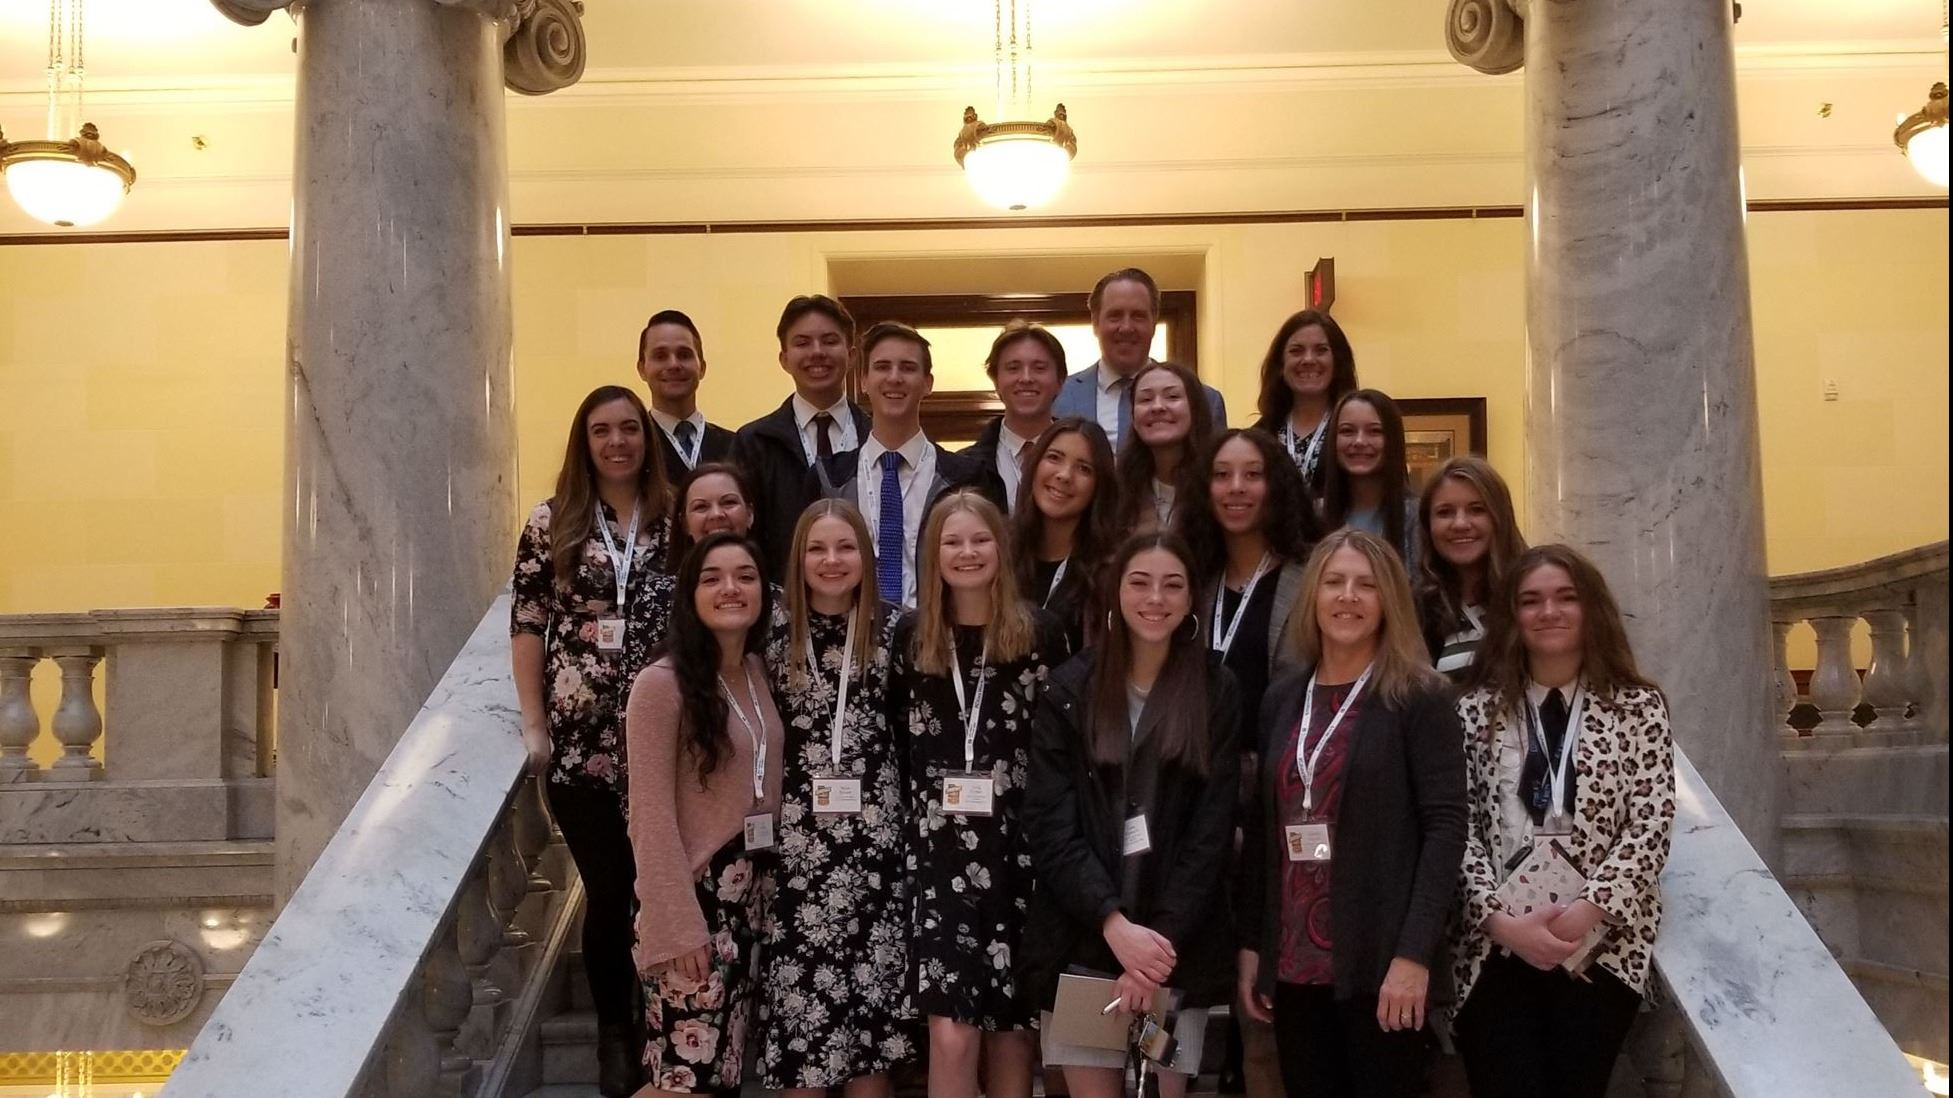 members of Youth Council at the State Capital building for Legislative Day 2020